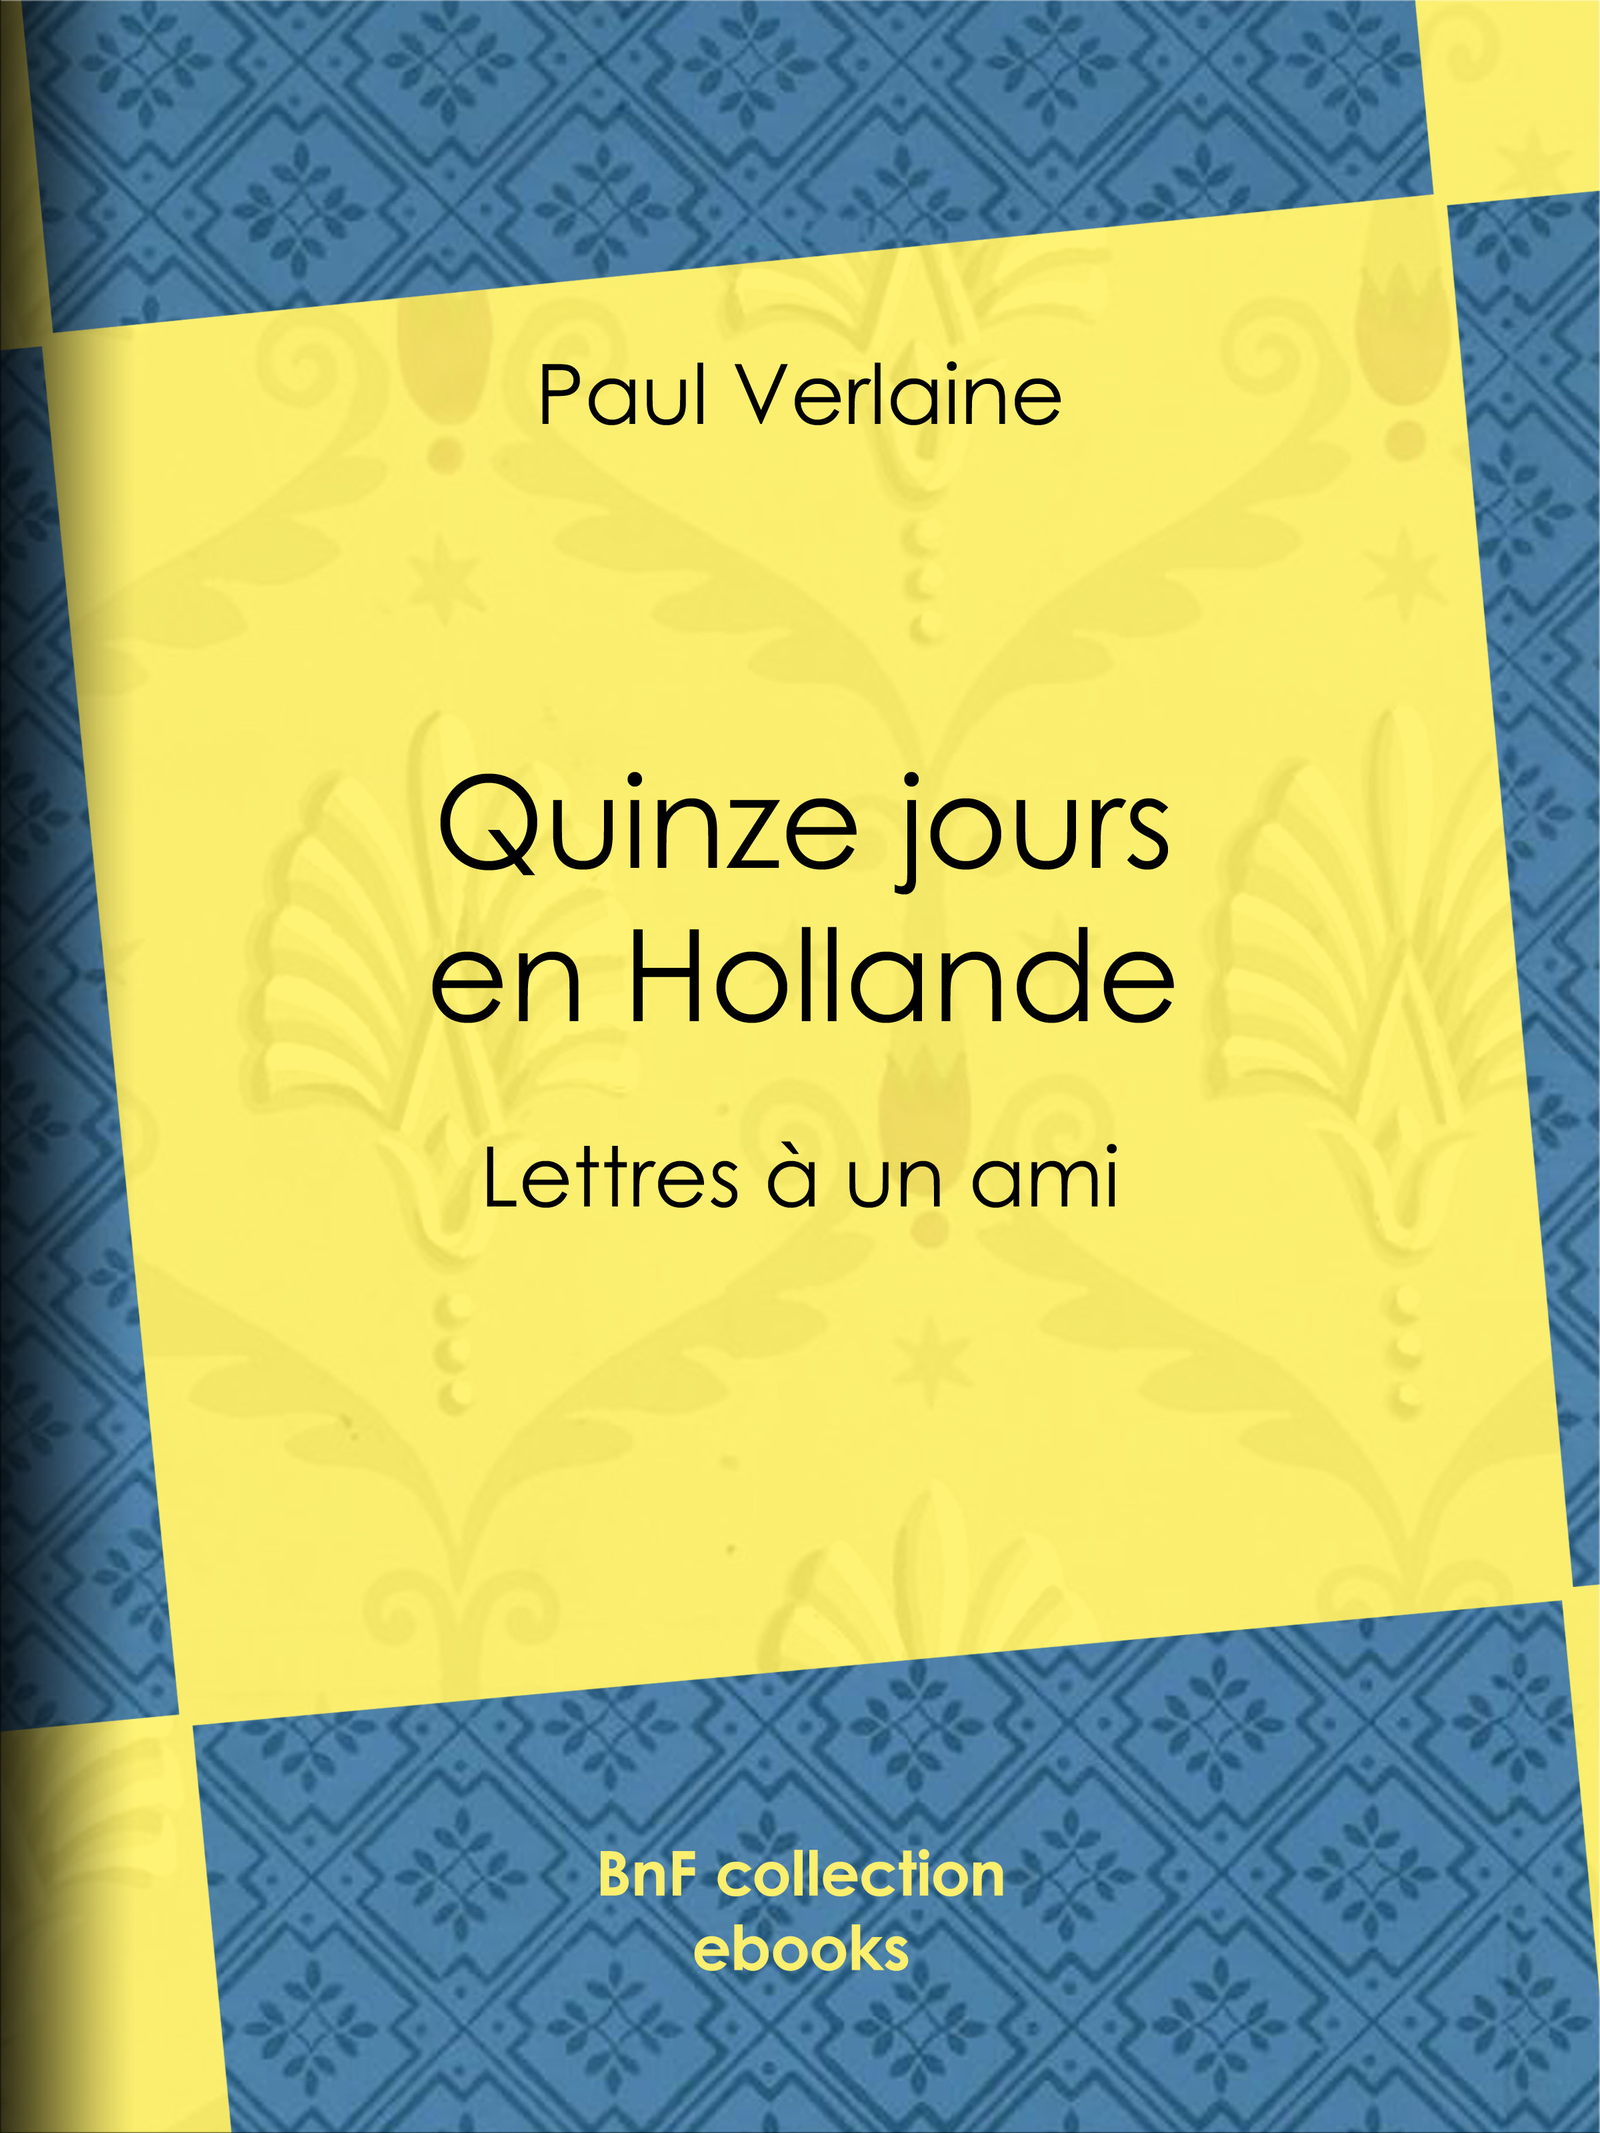 Quinze jours en Hollande